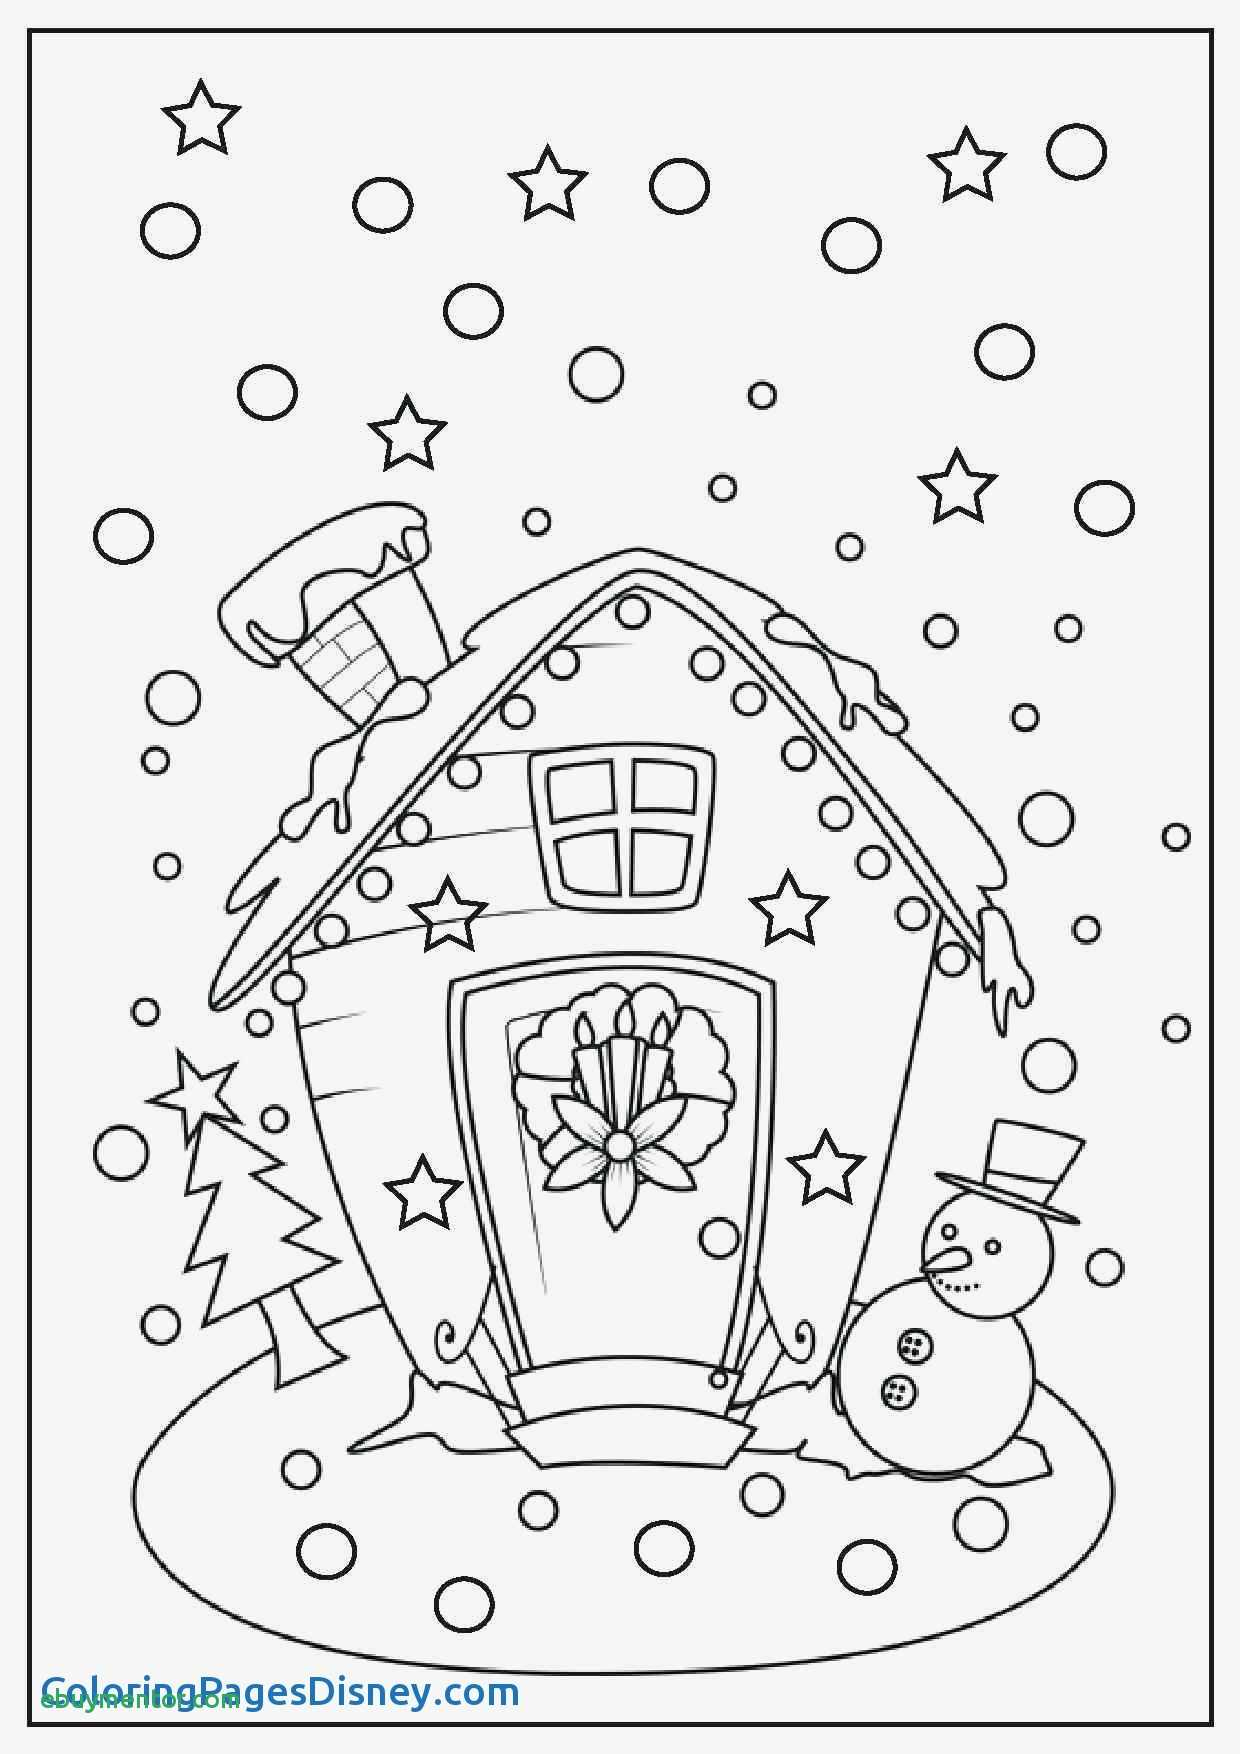 christmas coloring pages for kids Collection-Free Christmas Coloring Pages for Kids Printable Cool Coloring Printables 0d – Fun Time – Coloring Sheets Collection 8-n